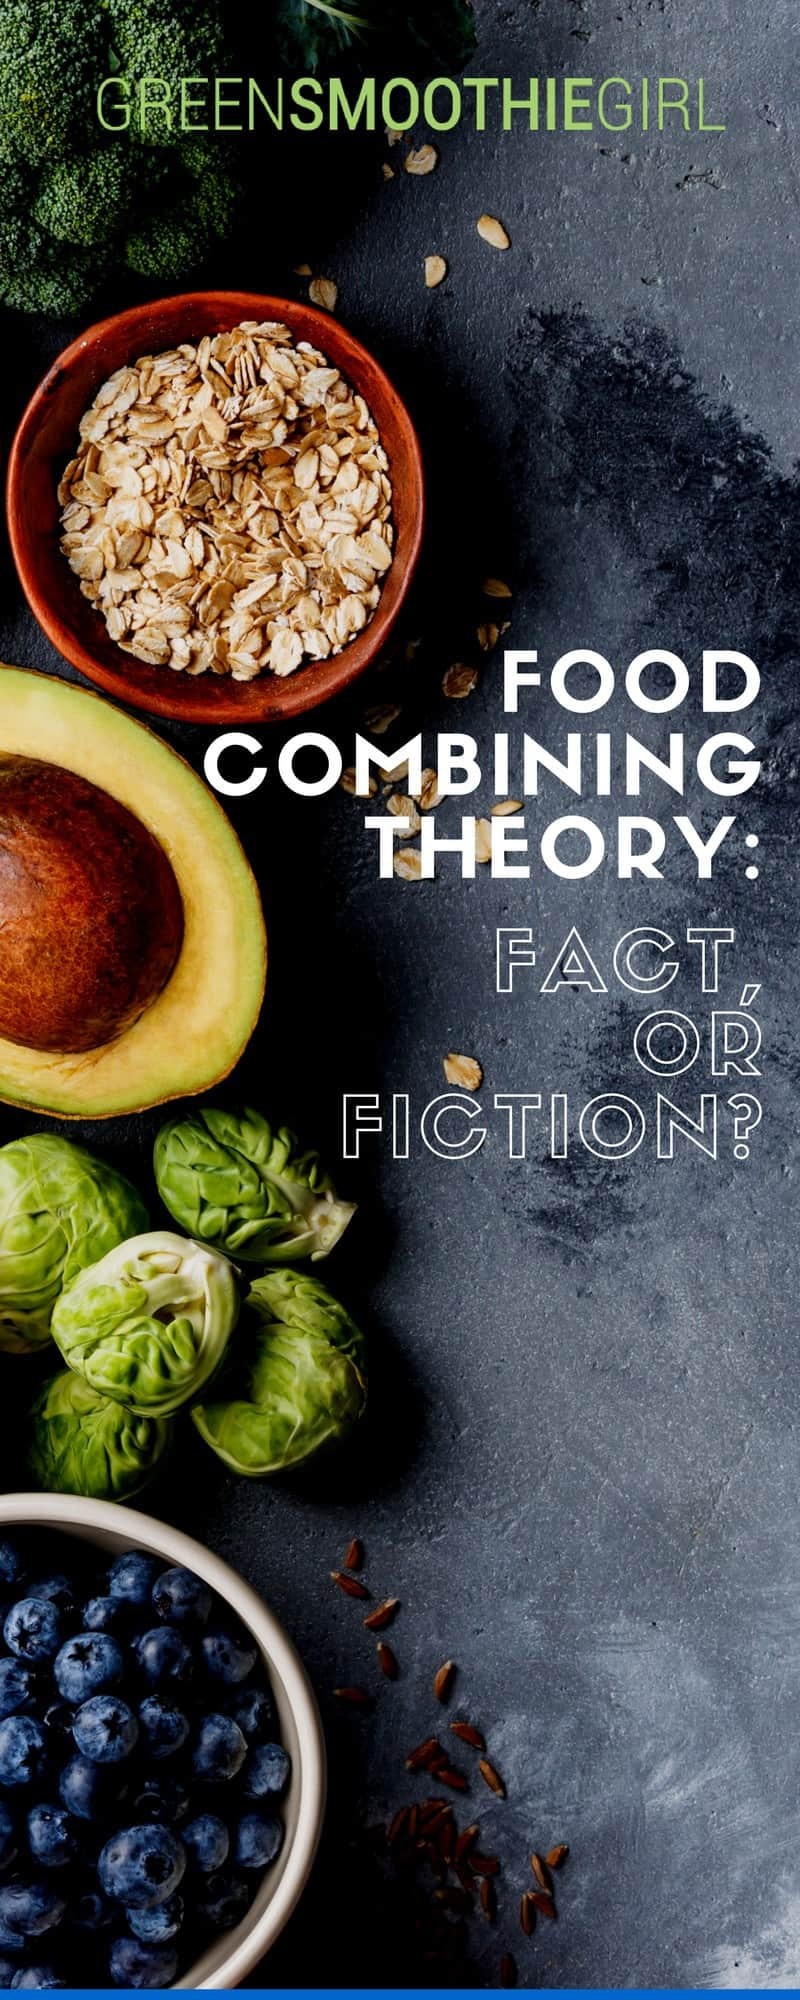 Food Combining Theory | Food Combining Theory: Fact, or Fiction?